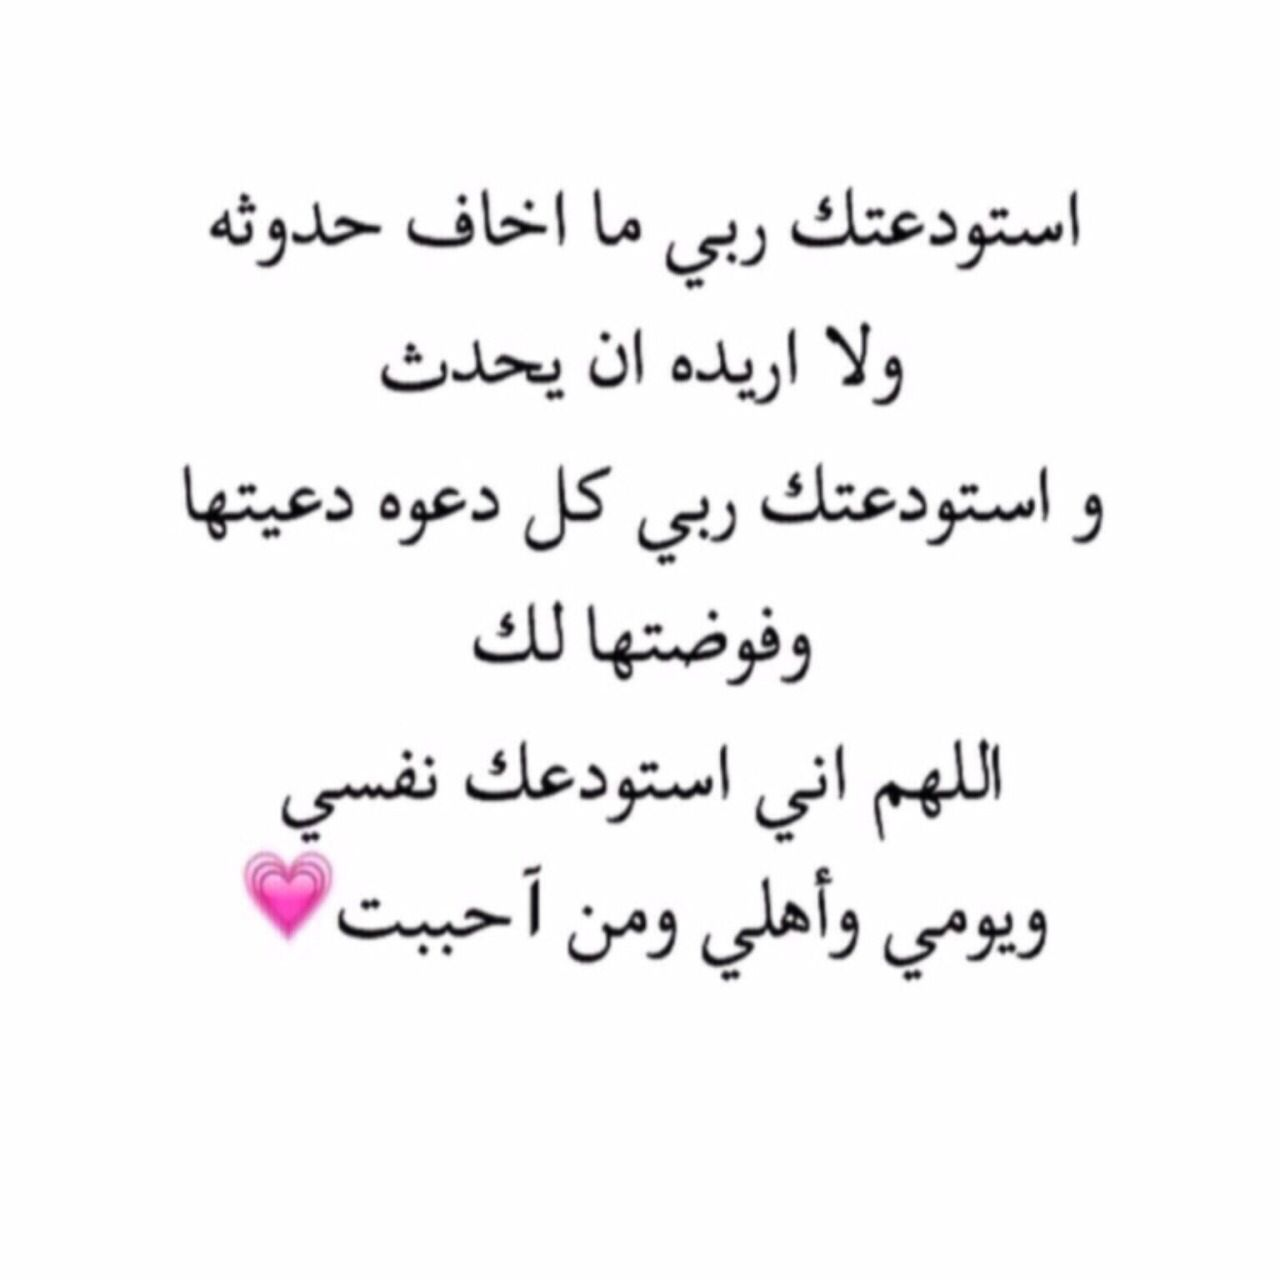 Discovered By الحمدلله Find Images And Videos About Islam Arabic And Muslim On We Heart It Quran Quotes Love Quran Quotes Inspirational Islamic Love Quotes